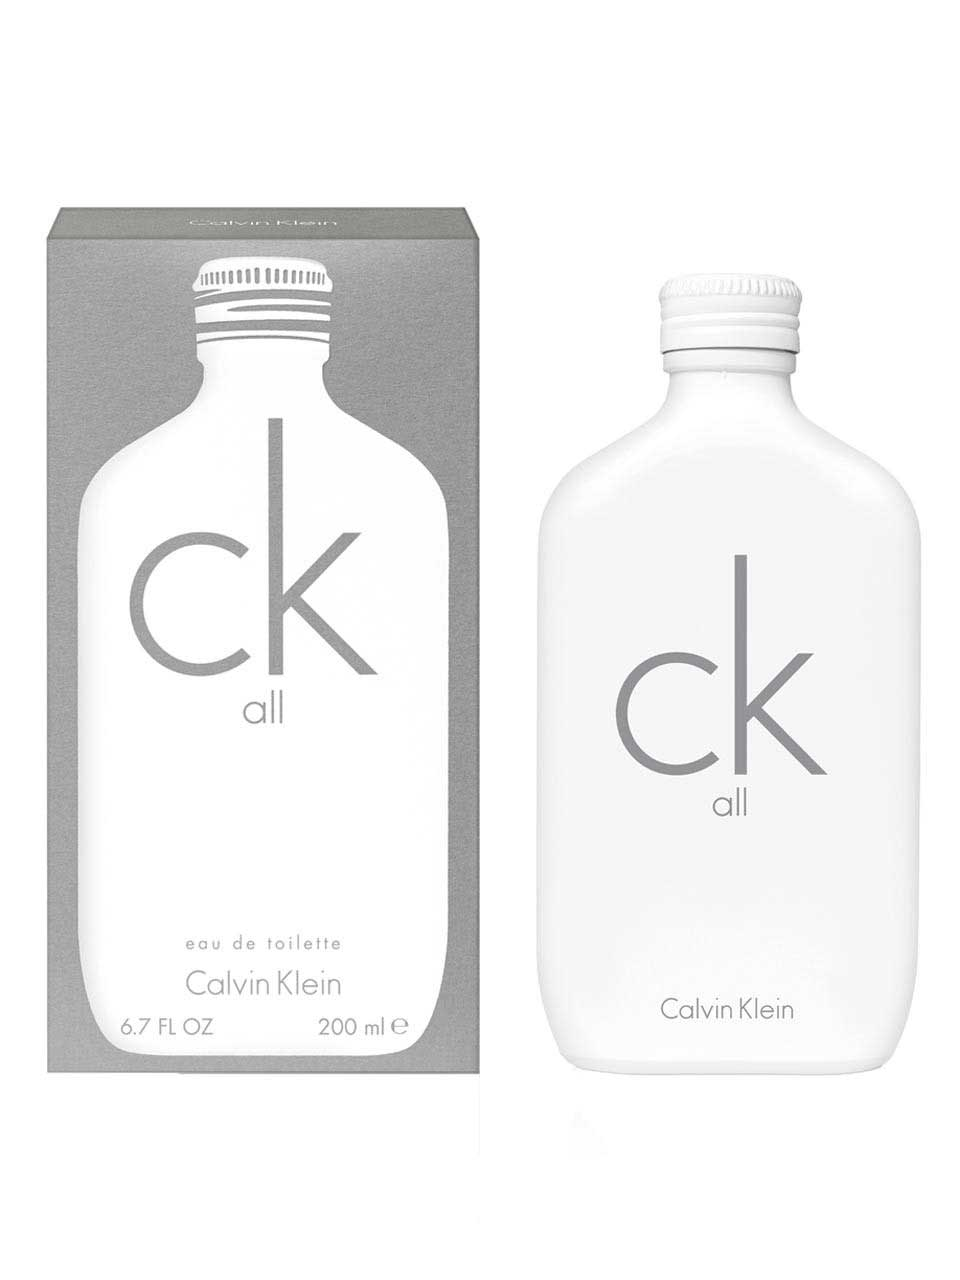 CALVIN KLEIN CK ALL EDT 50 ML